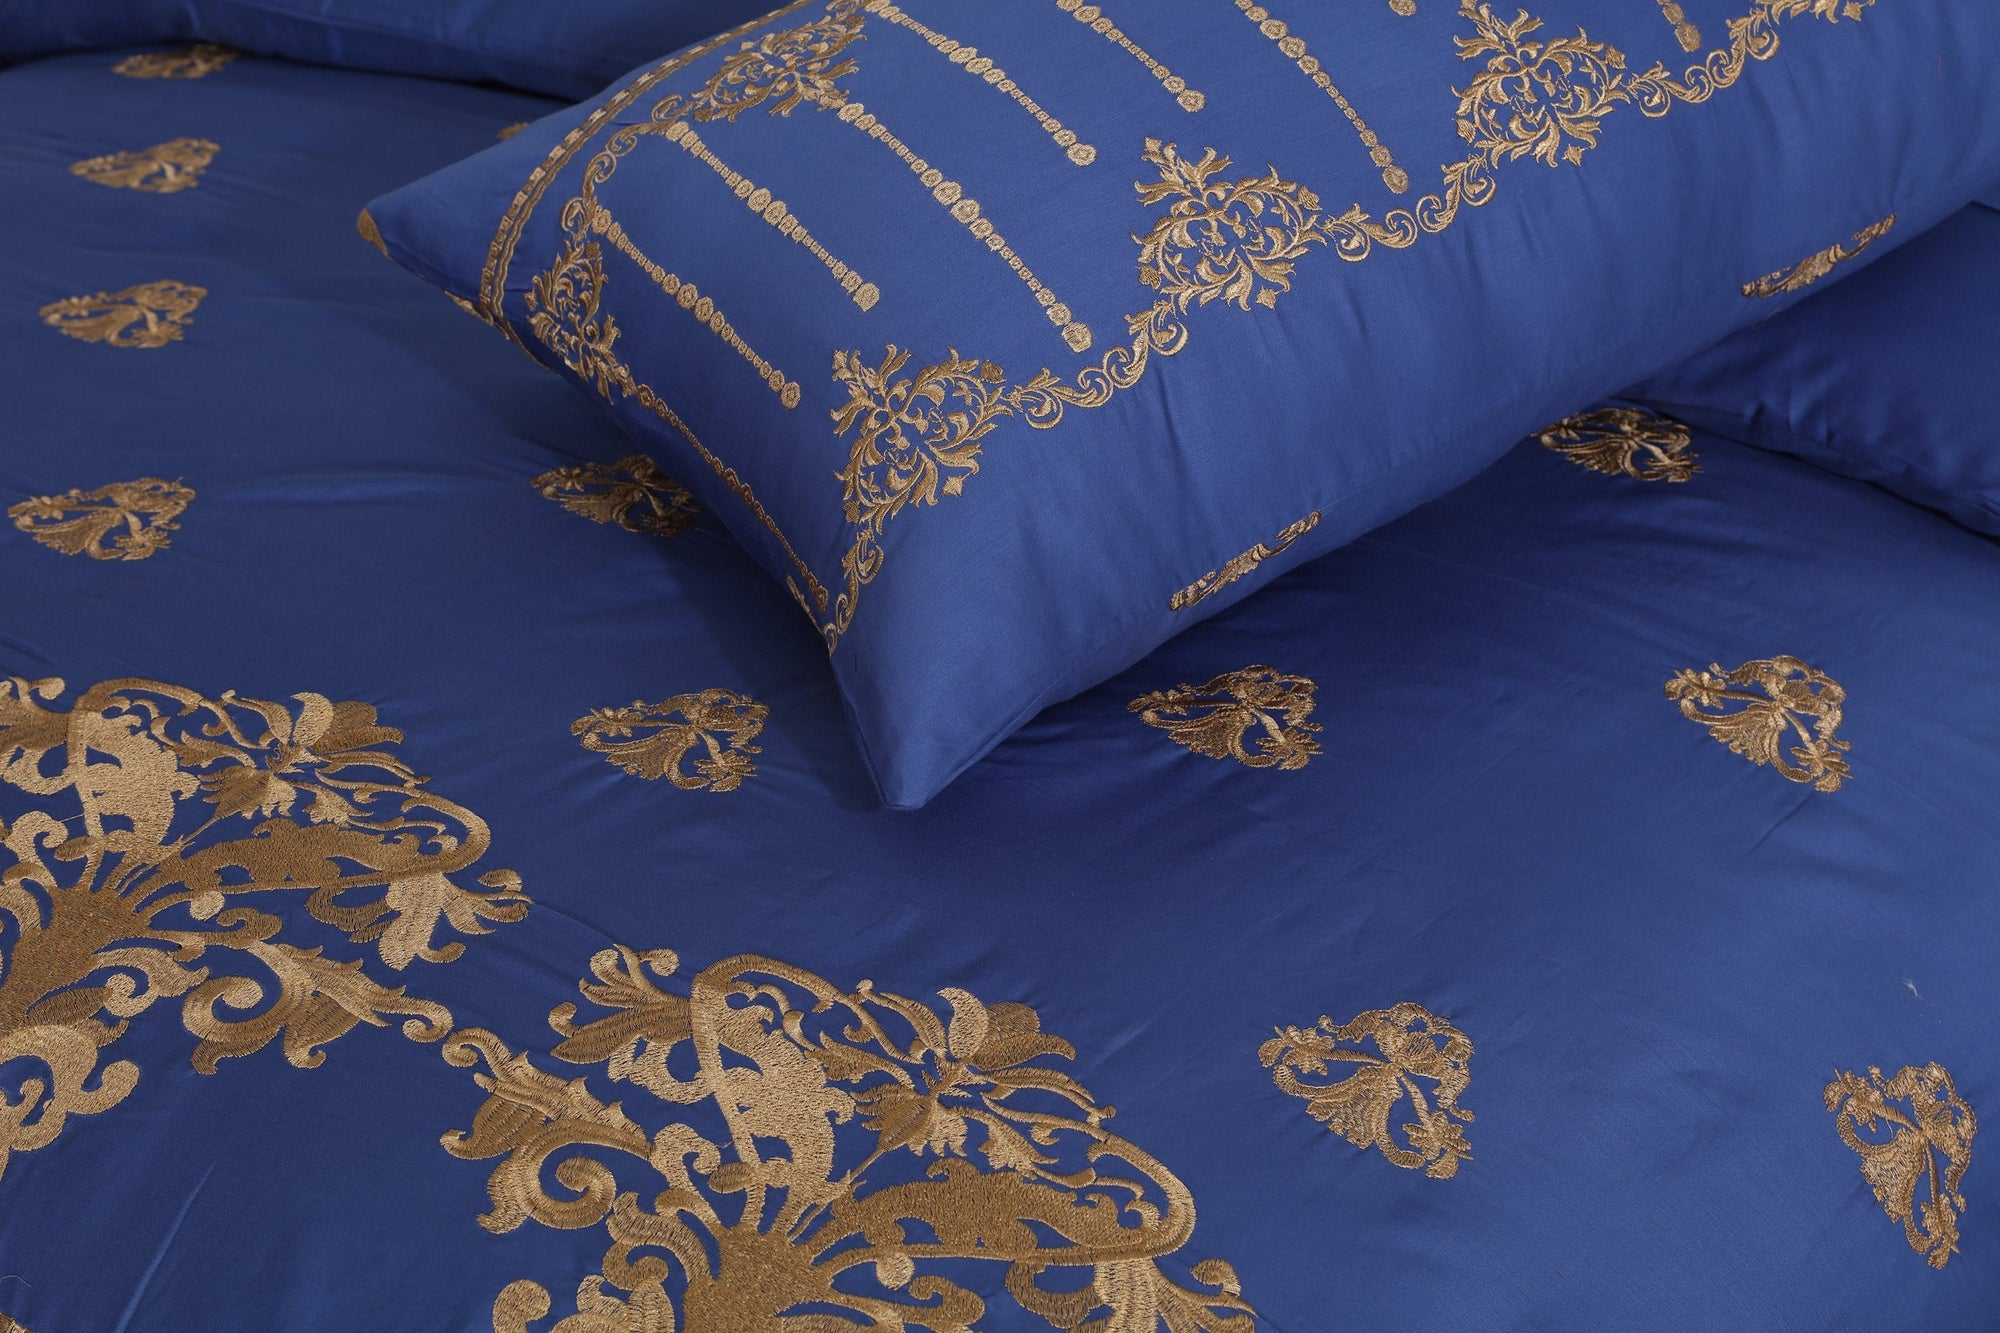 Grace Midnight Blue D04 - 6PC Embroidered Luxury Sateen Duvet Cover Set King Size